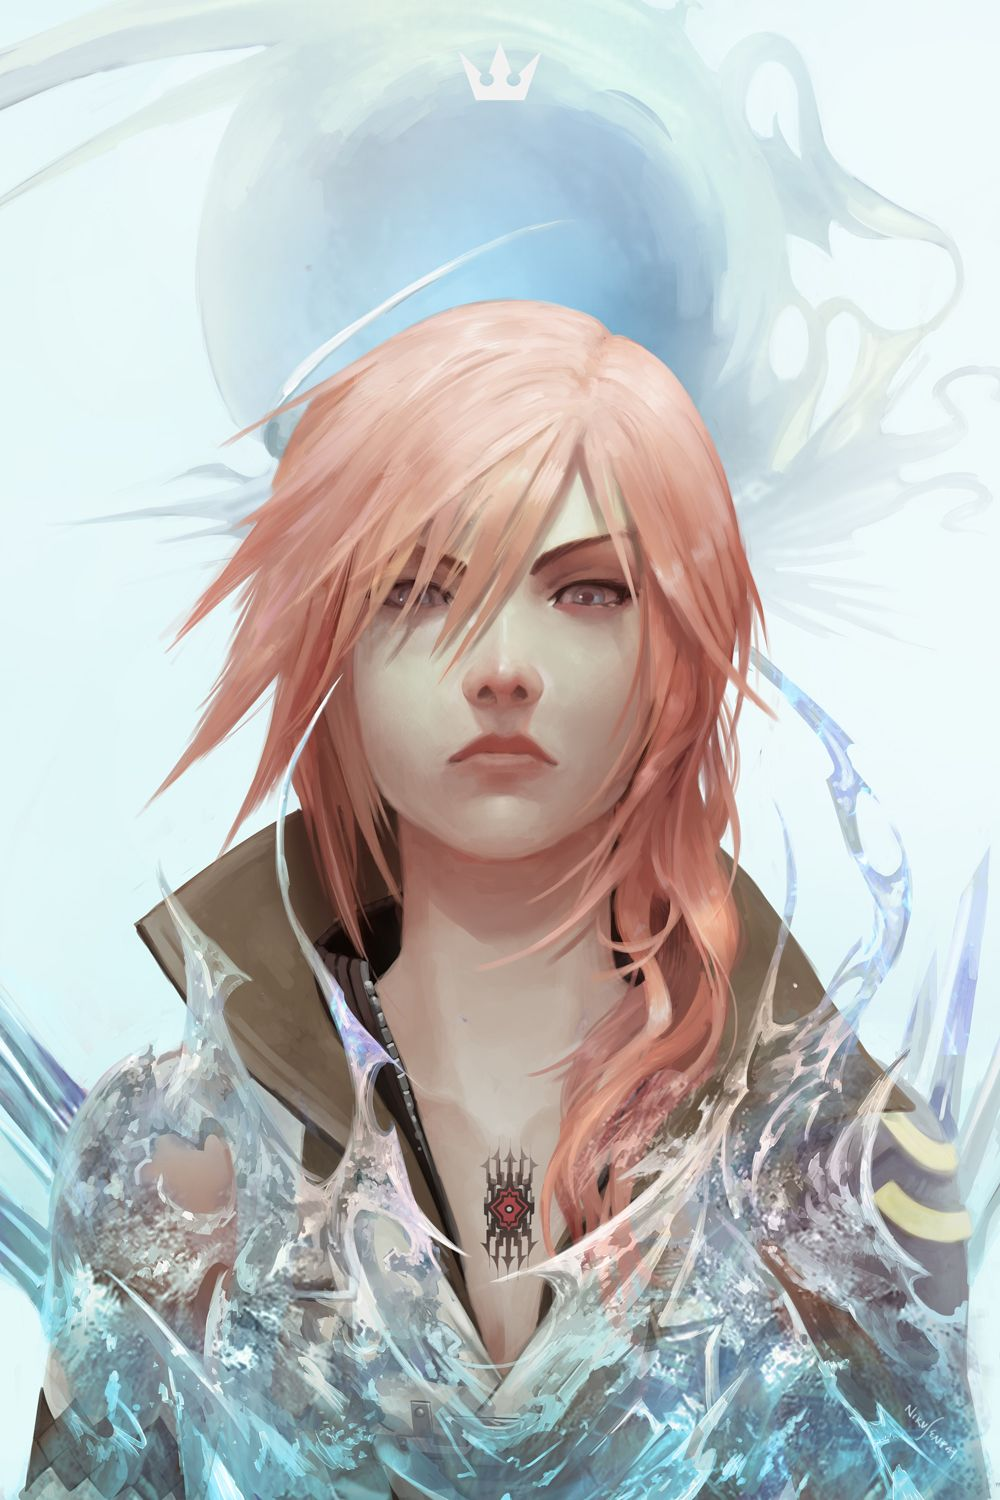 Pin By Final Fantasy Blog On Other Final Fantasy Art Lightning Final Fantasy Final Fantasy Artwork